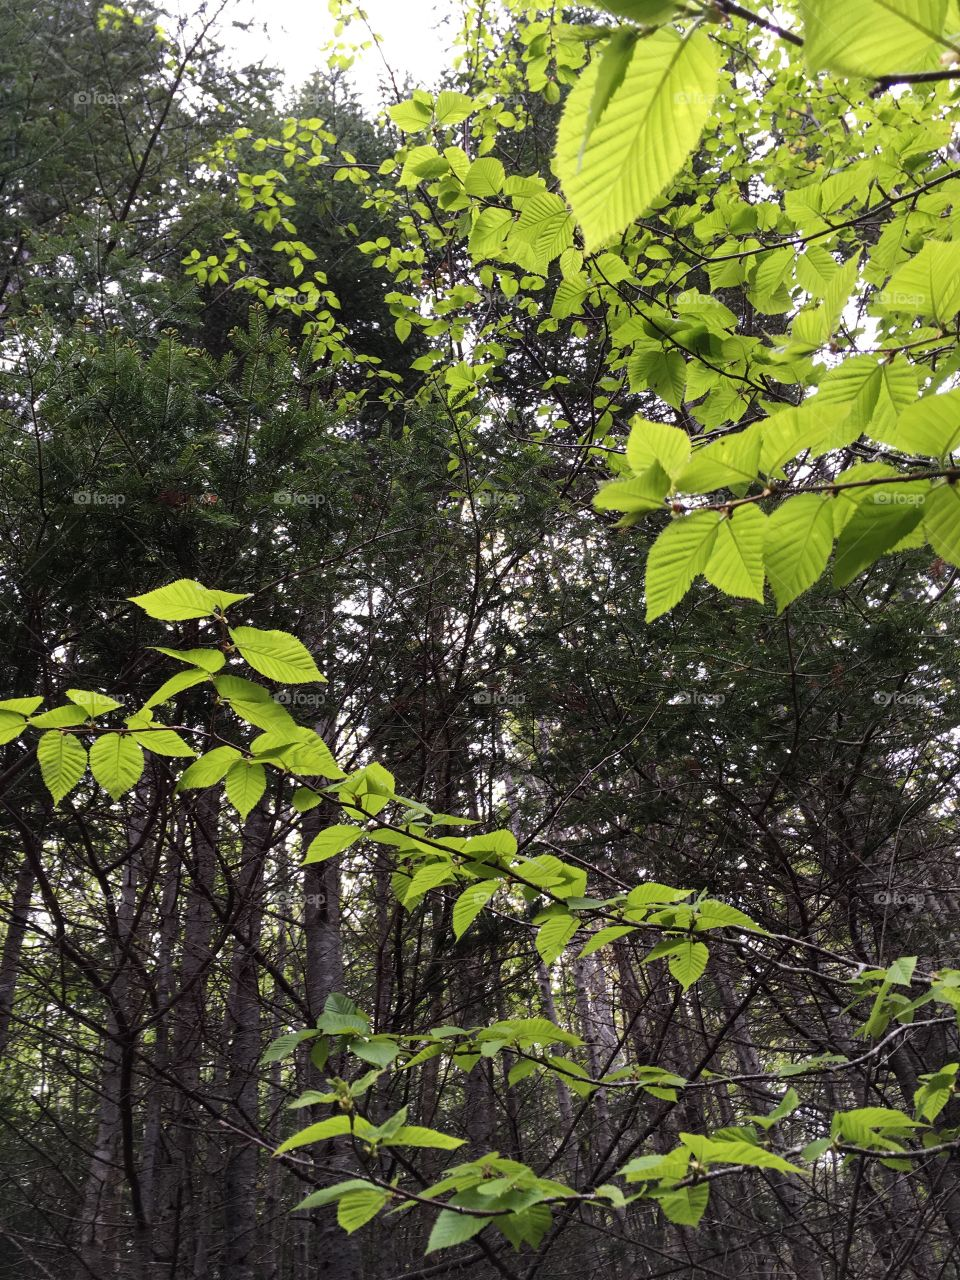 Leaves and trees in the forest.  Hiking in the woods.